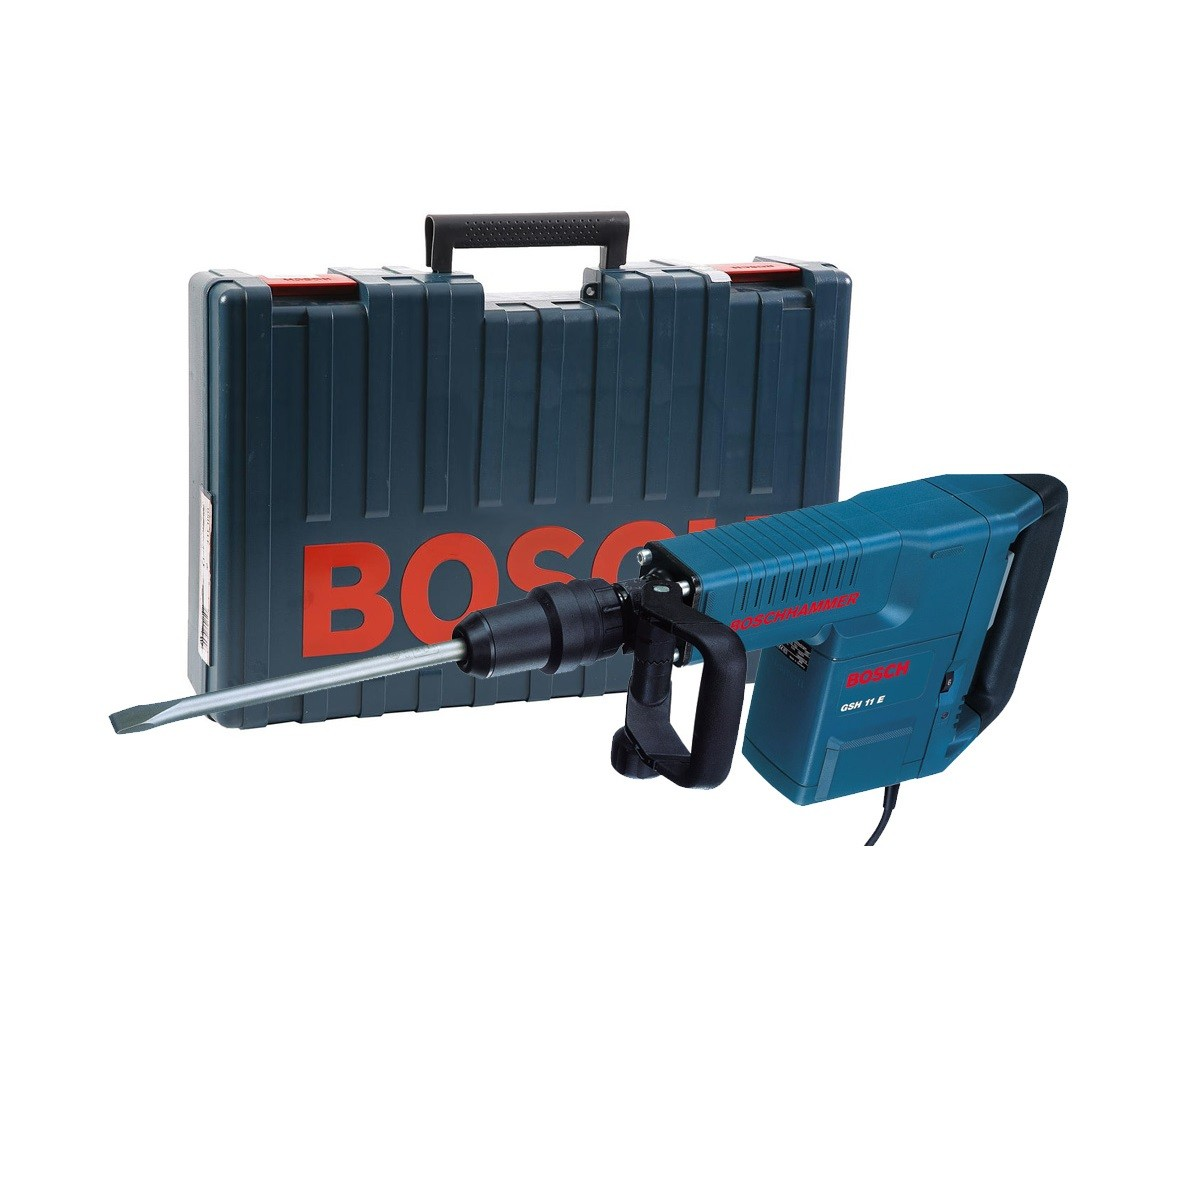 Bosch GSH 11 E 240v with SDS Max 0611316742